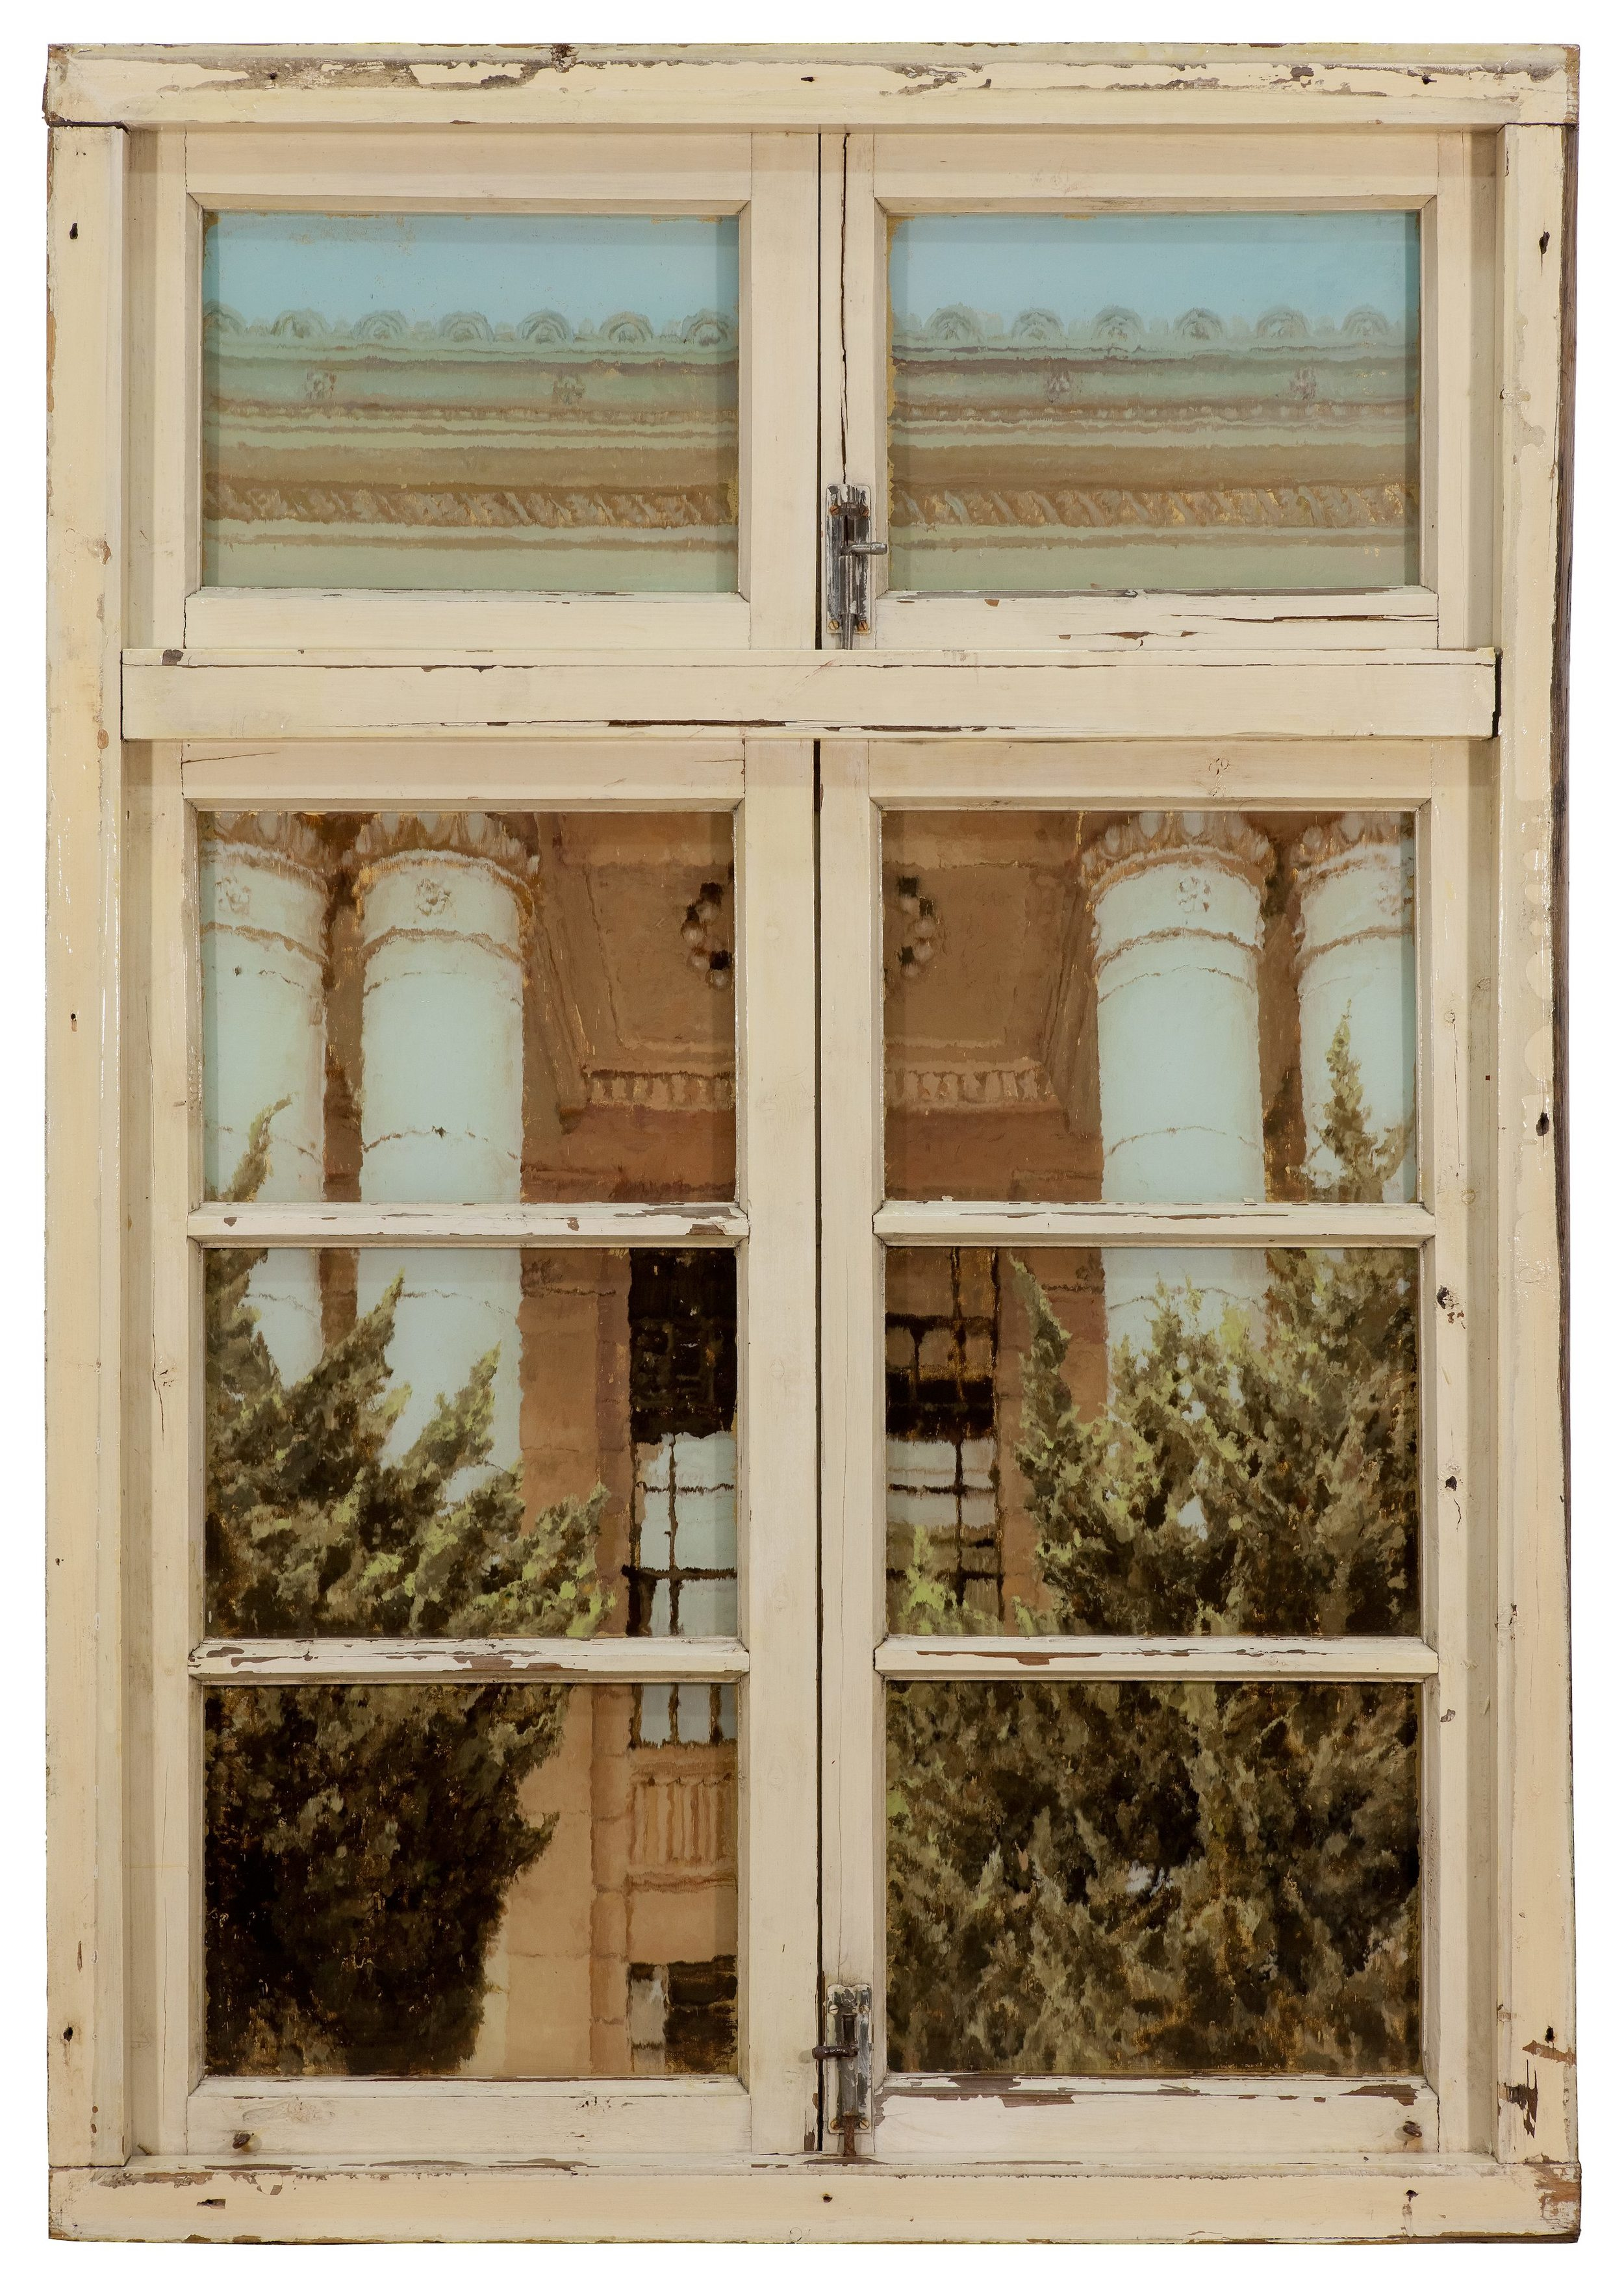 Li Qing 李青, Neighbour's Window · Moscow Style 邻窗·莫斯科风, 2013, 木、玻璃、金属、油彩 Wood, glass, metal and oil colors, 148 x 103 x 7.5 cm